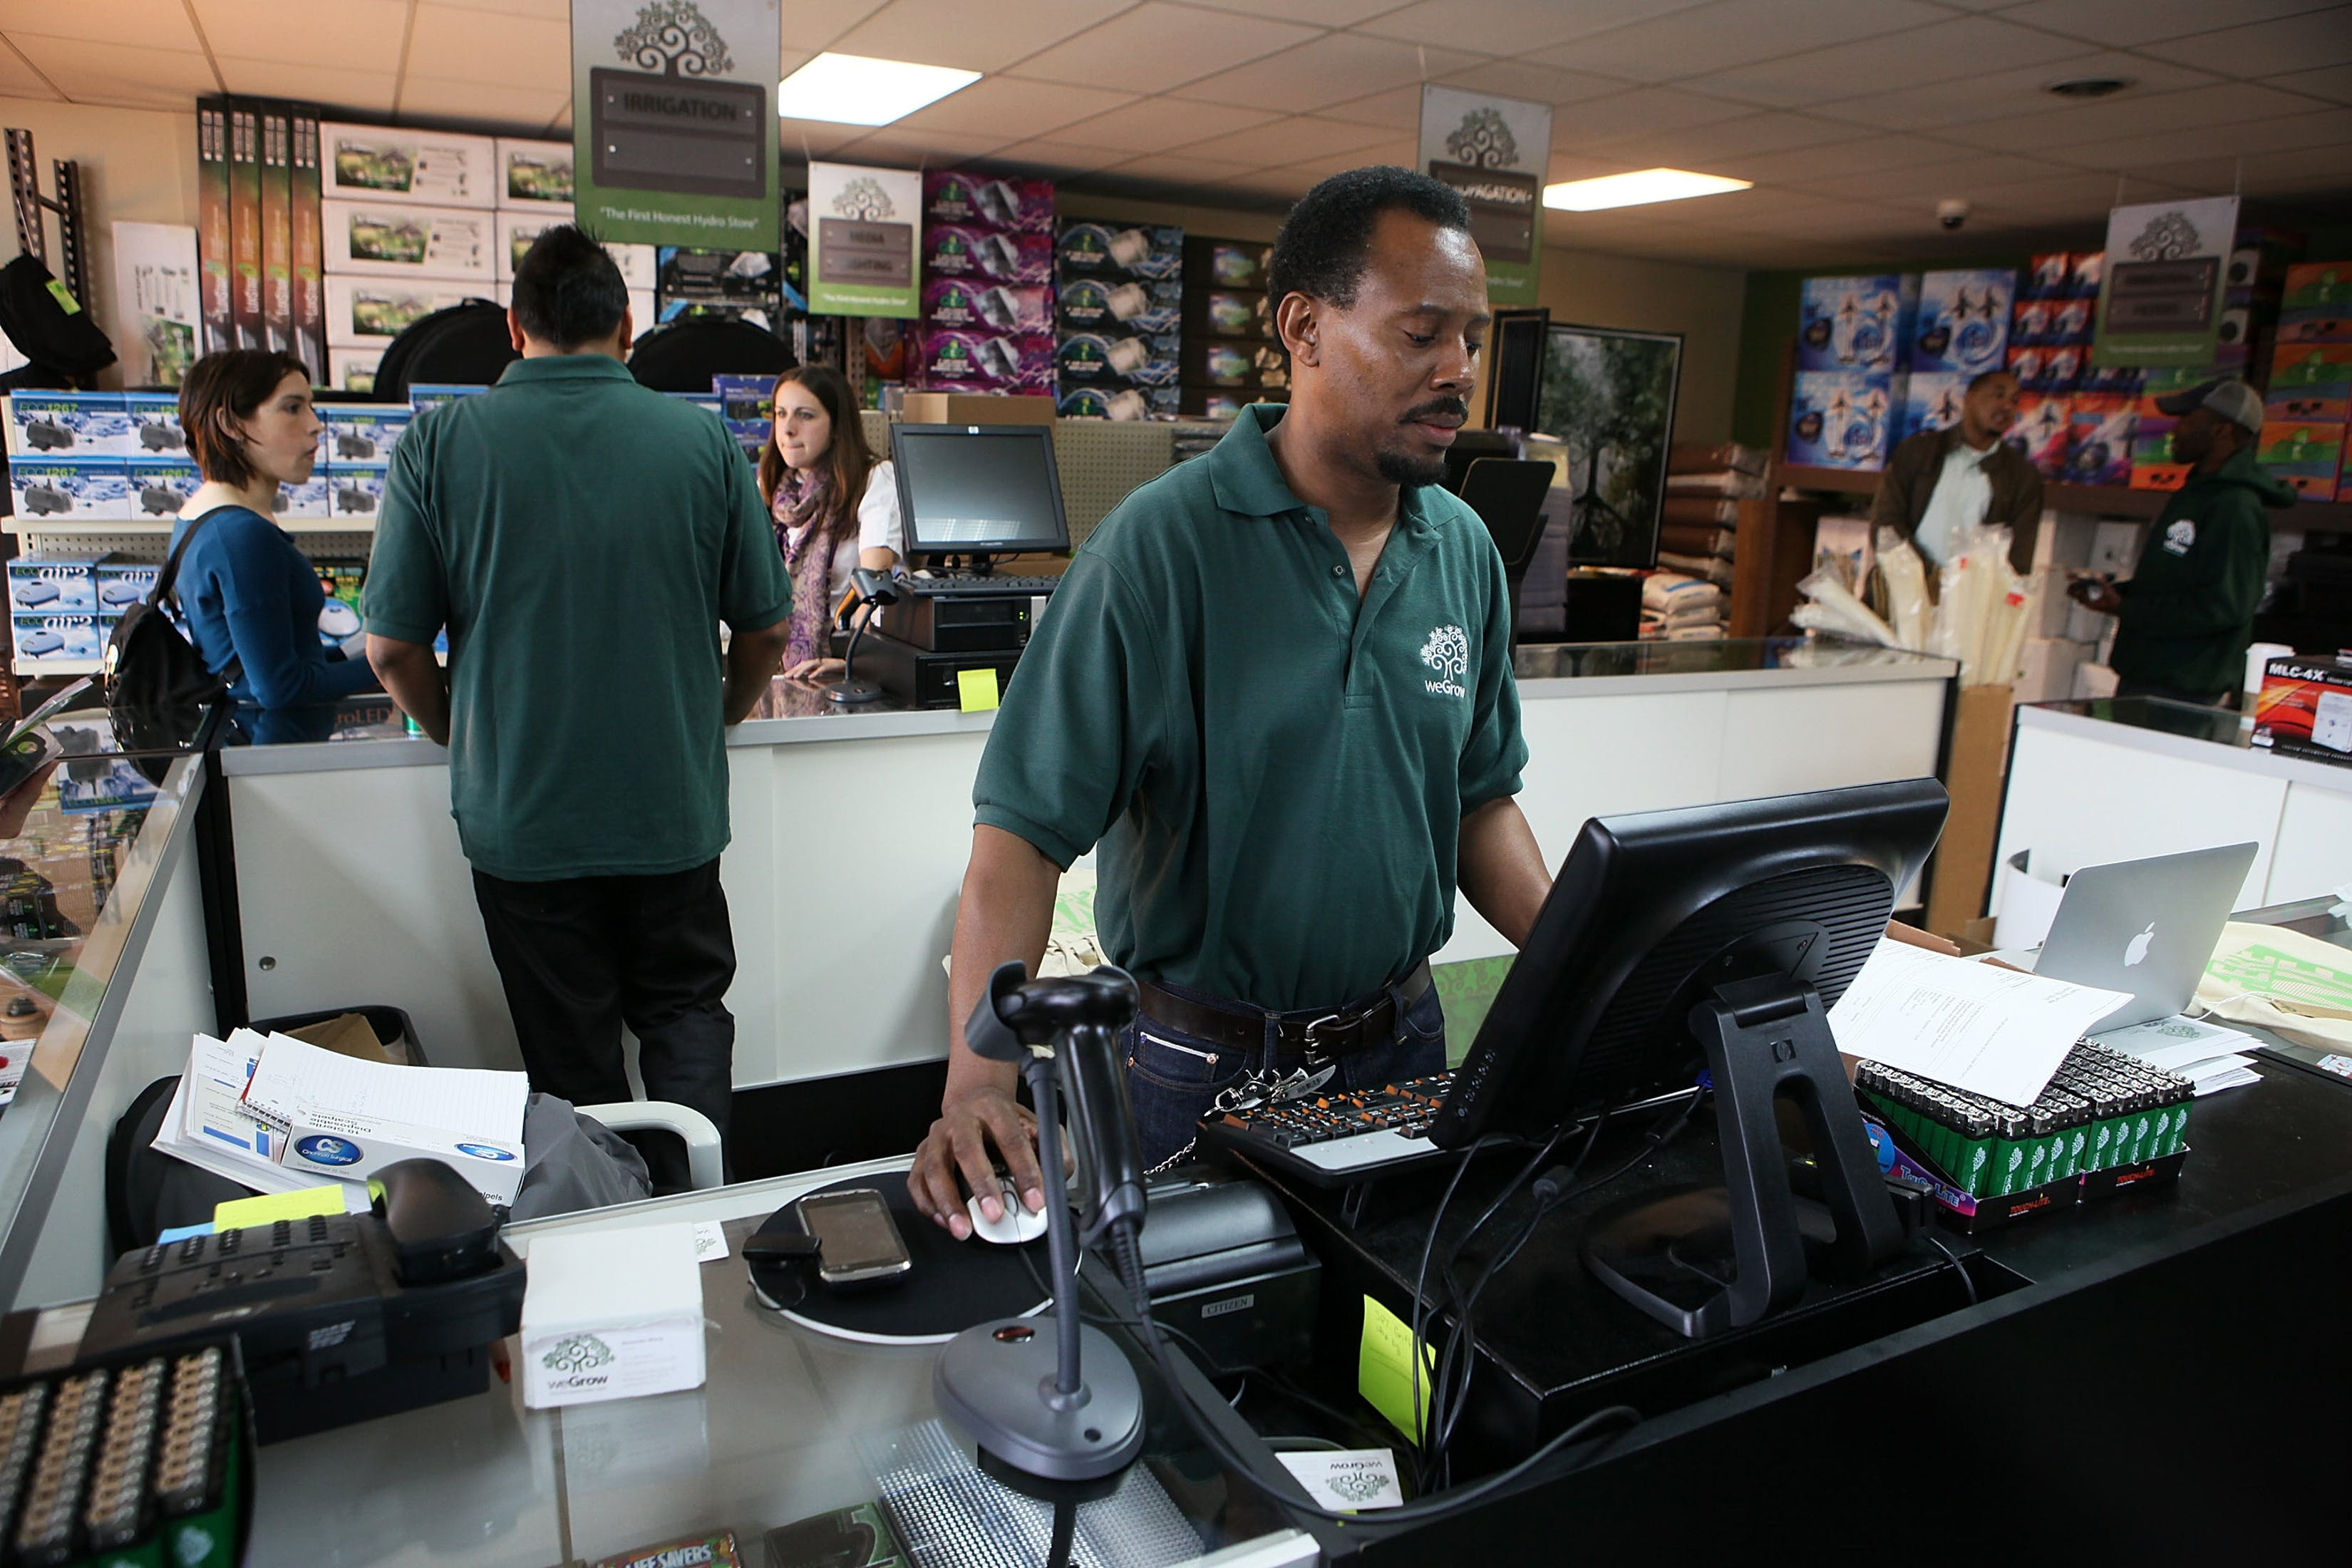 Walmart of Weed 2 of 2 Why California is important for ending marijuana prohibition in the U.S.